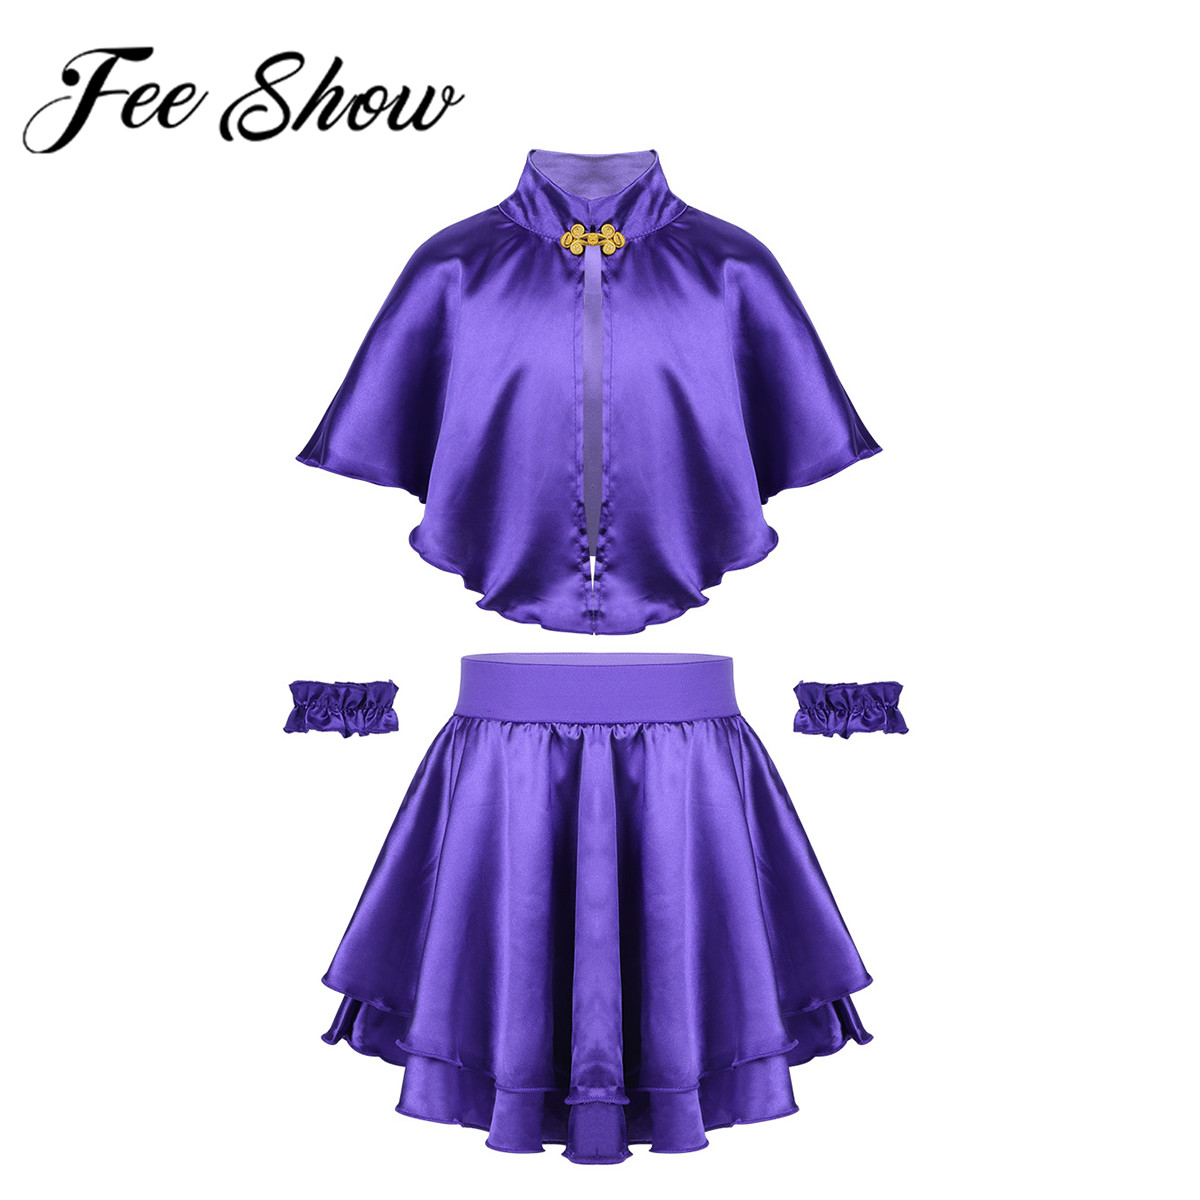 2019 Kid Girls Christmas Greatest Show Dress Up Halloween Dance Clothes Costume Outfits Fancy Cosplay Theater Musicals Party Set